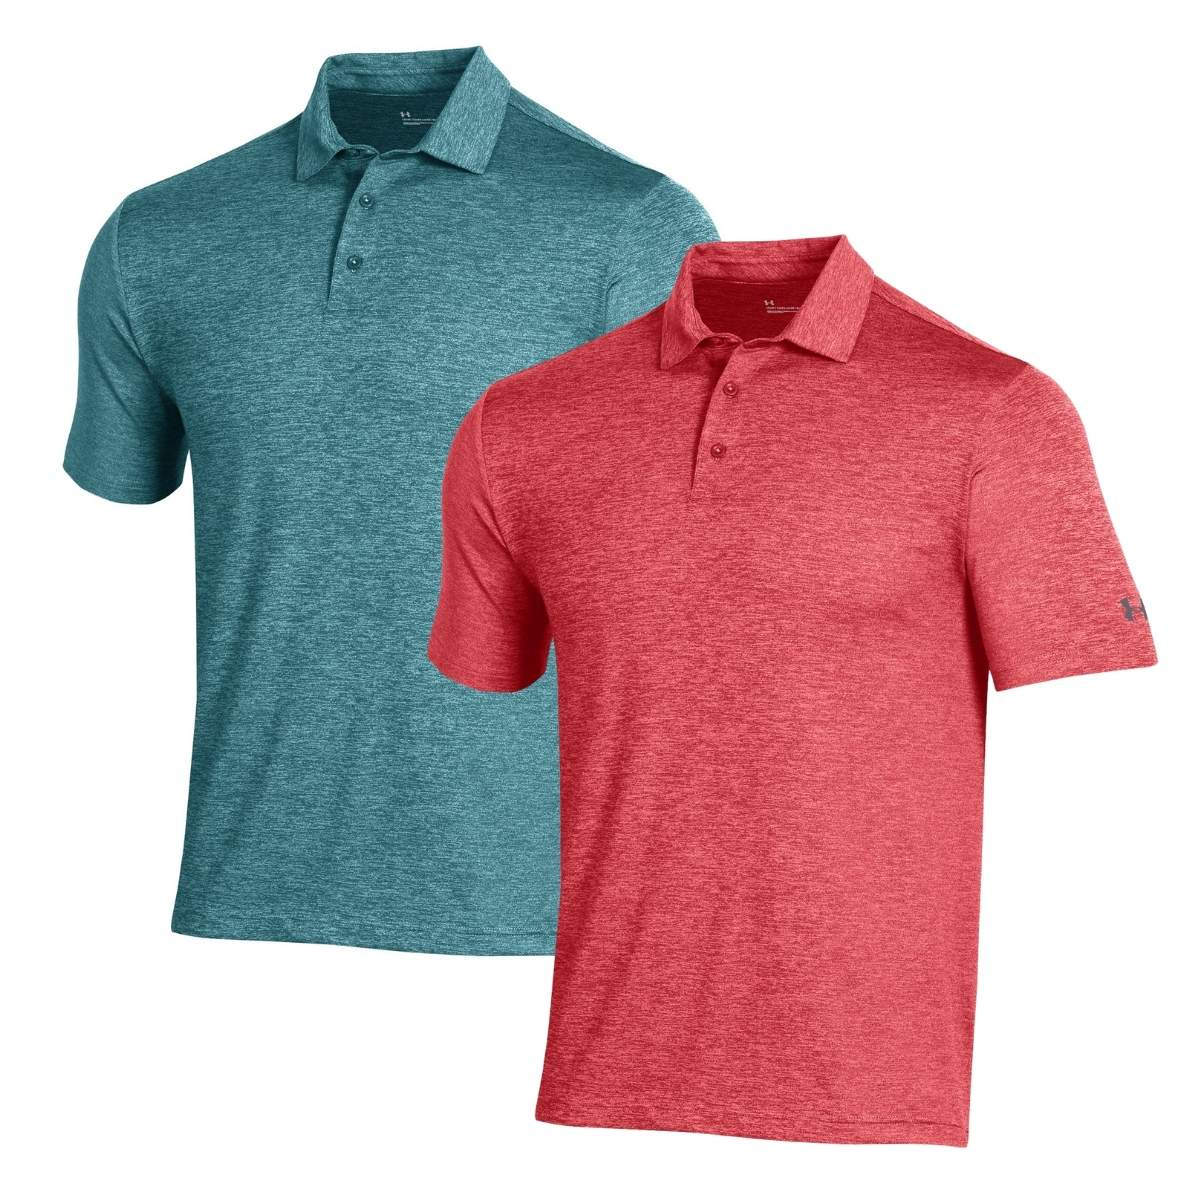 Under Armour Men's 2021 Playoff 2.0 Heather Polo